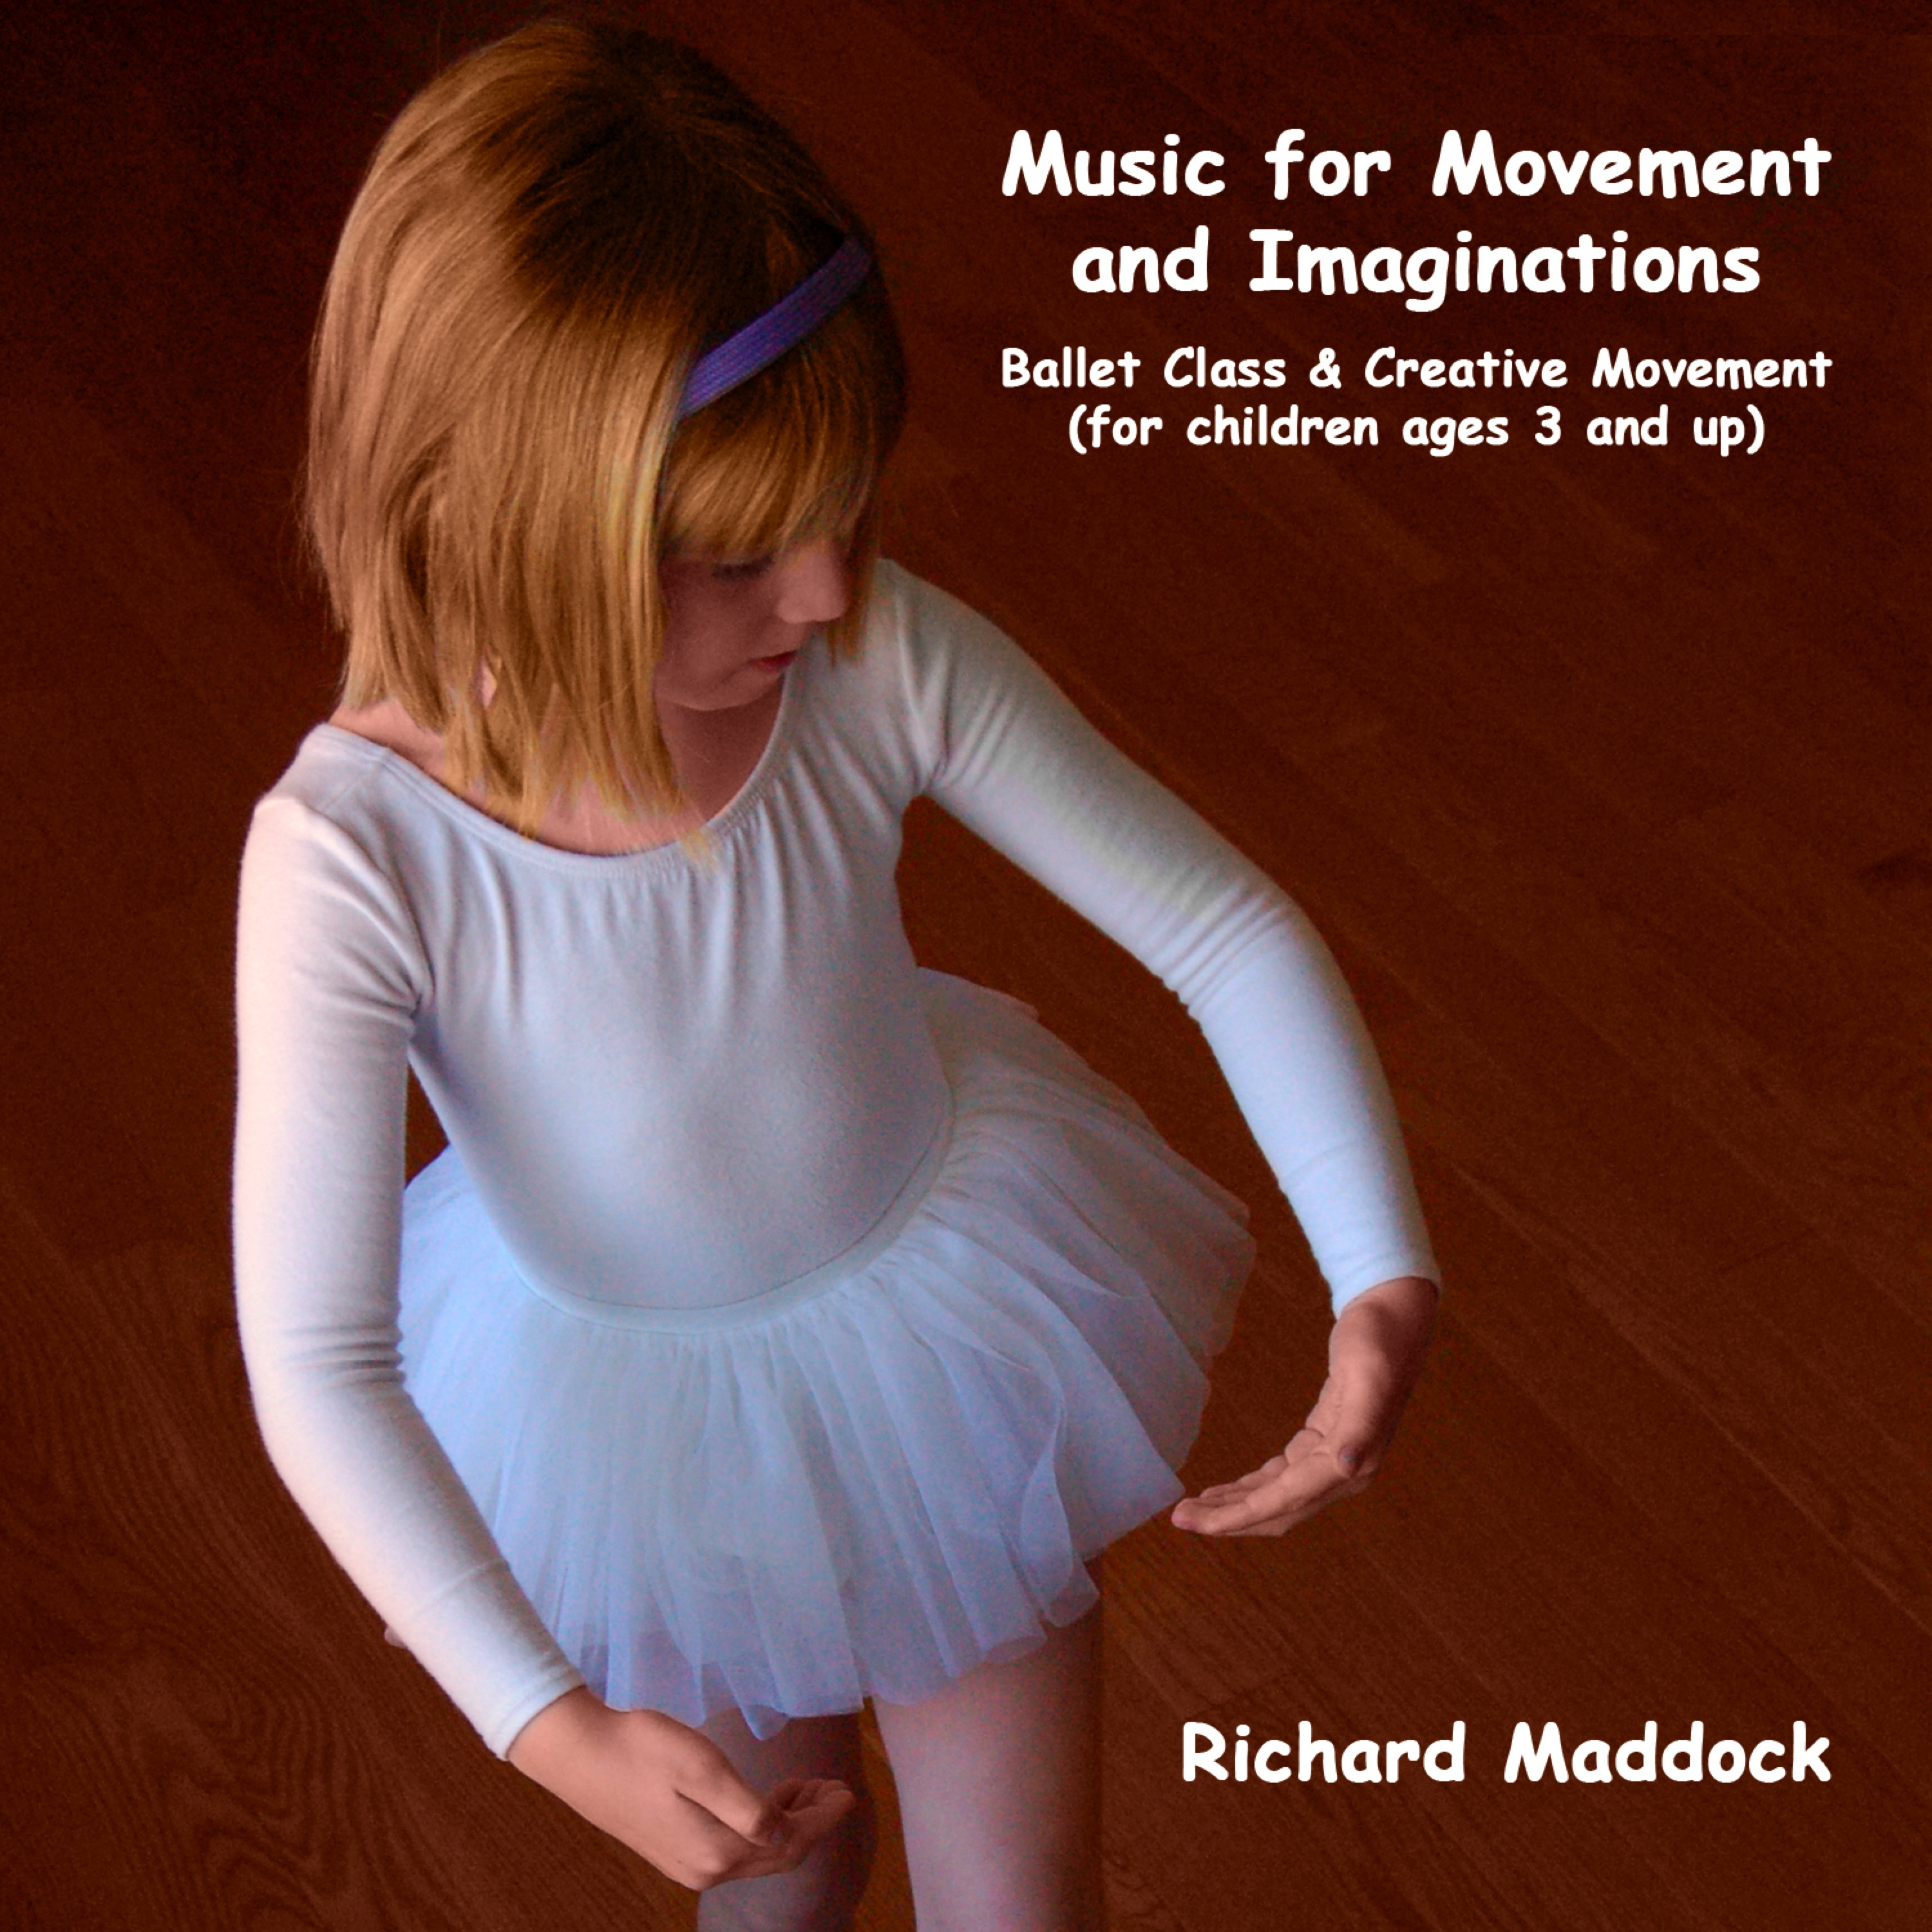 Richard Maddock Music — CD Review and Giveaway!